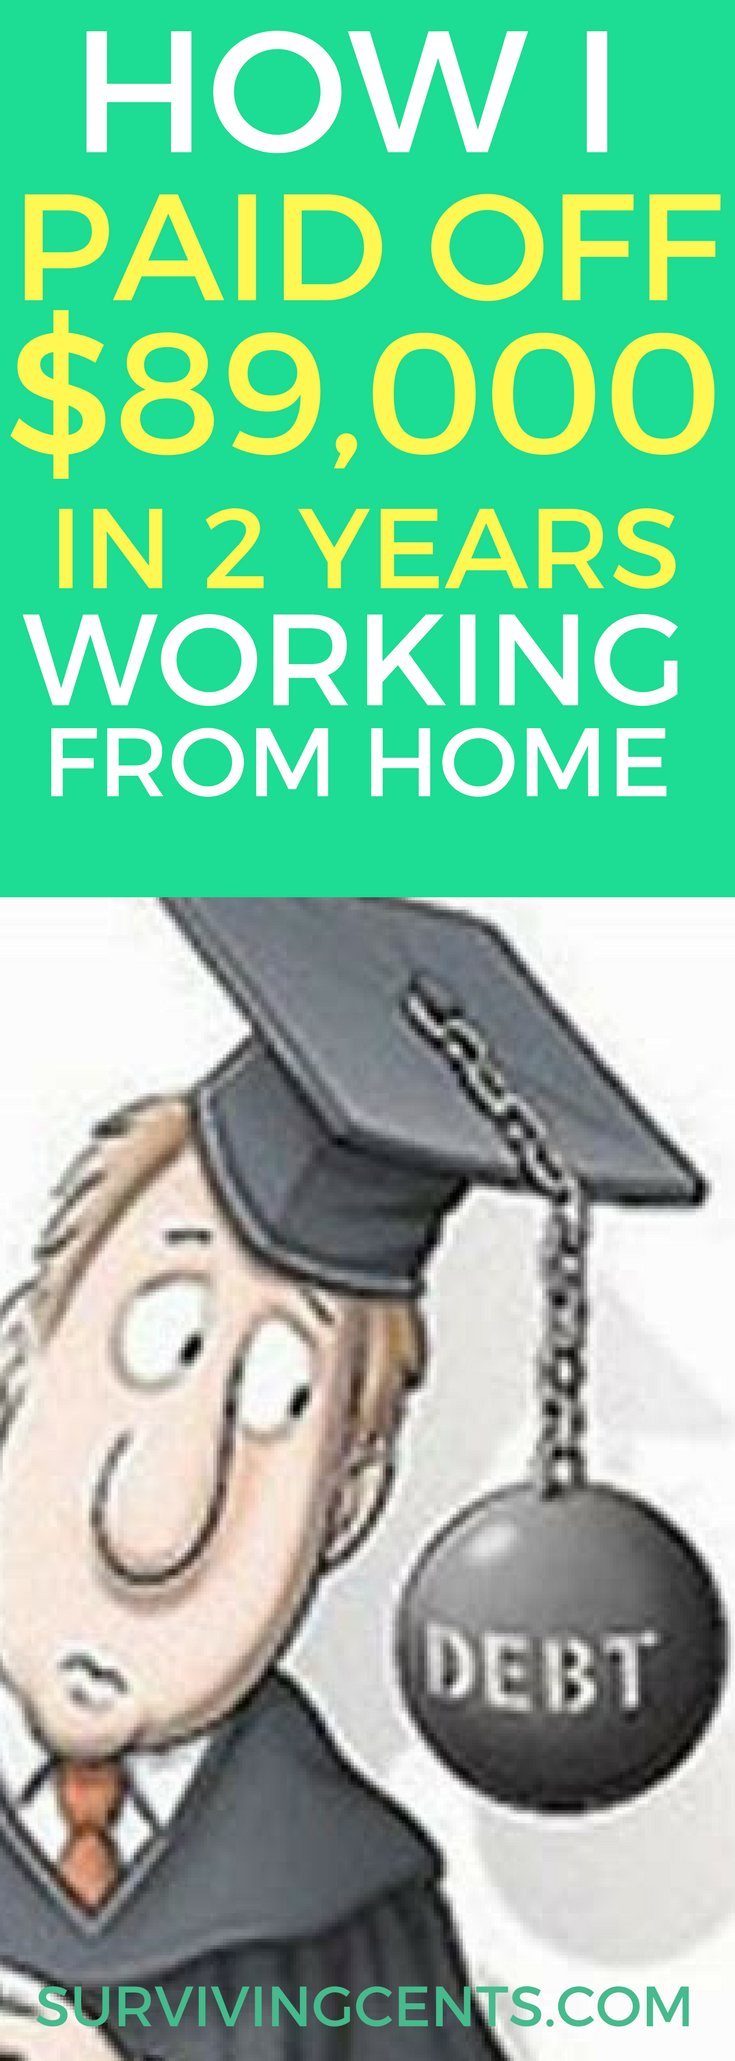 Looking for a plan to pay off debt? Learned how I paid of over $89,000 in debt in just 2 years by working from home and setting myself up for the future.